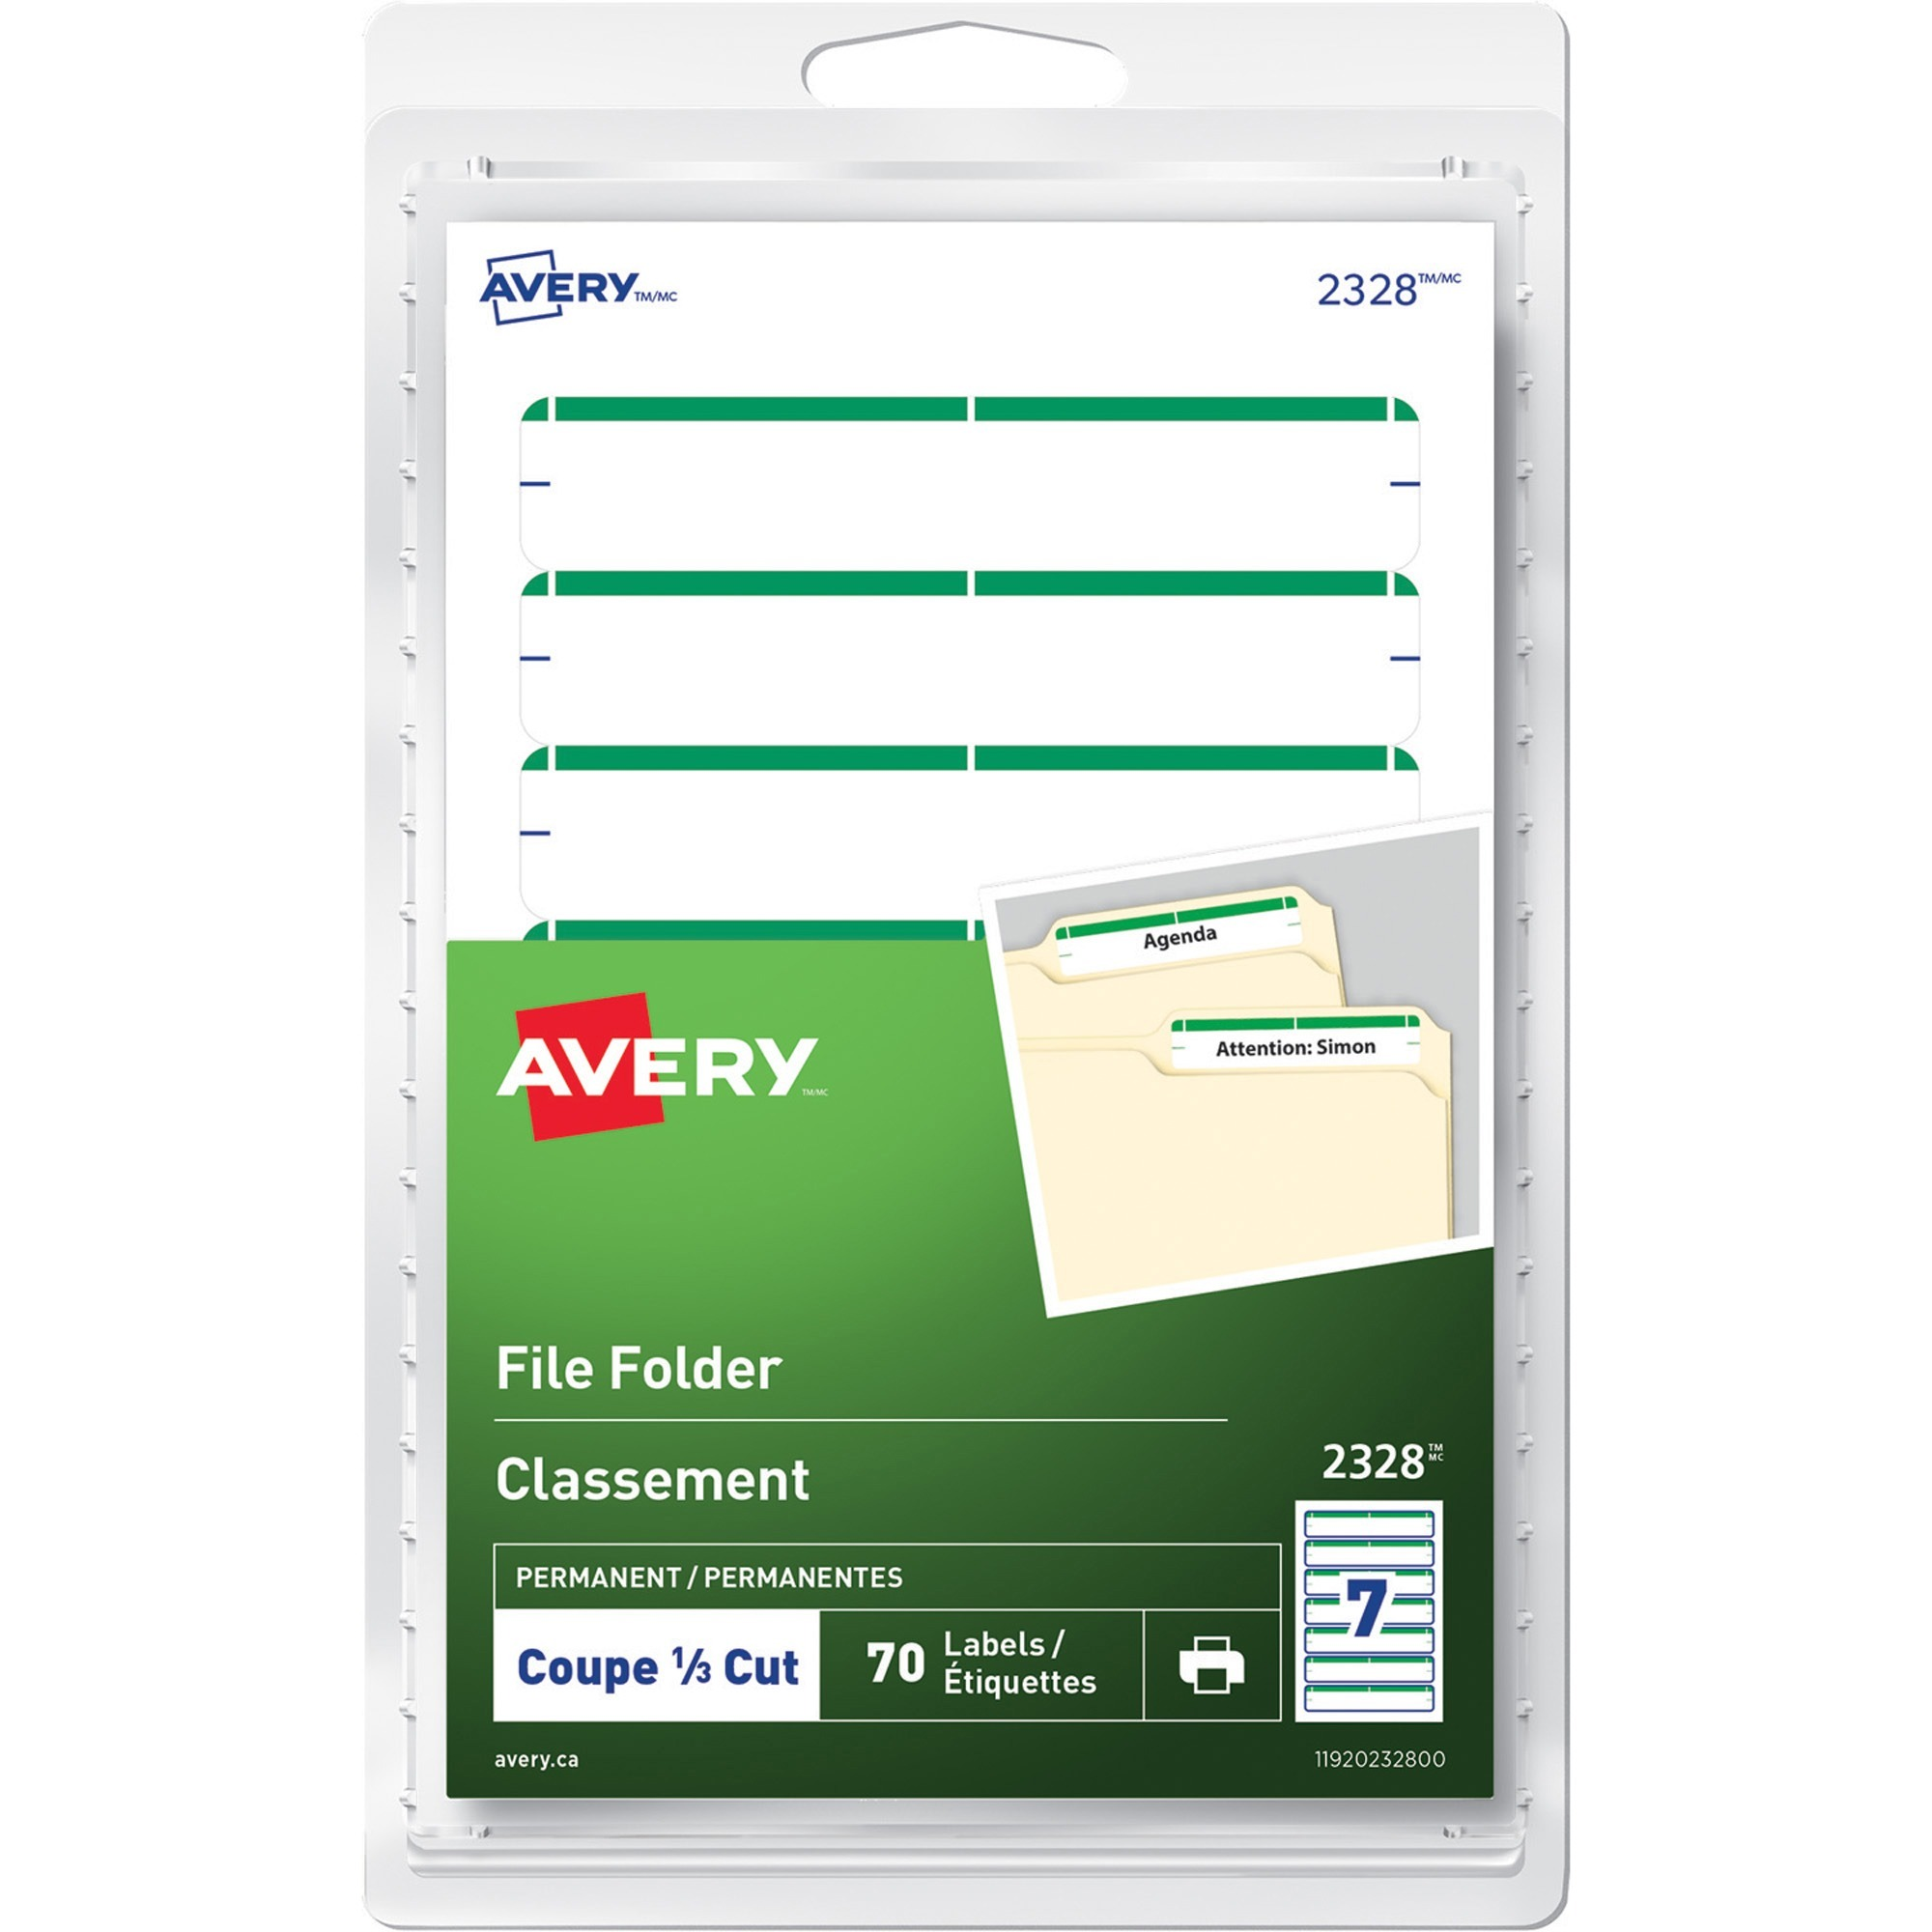 Avery® Print or Write File Folder Labels - 10 sheets - 70/pack